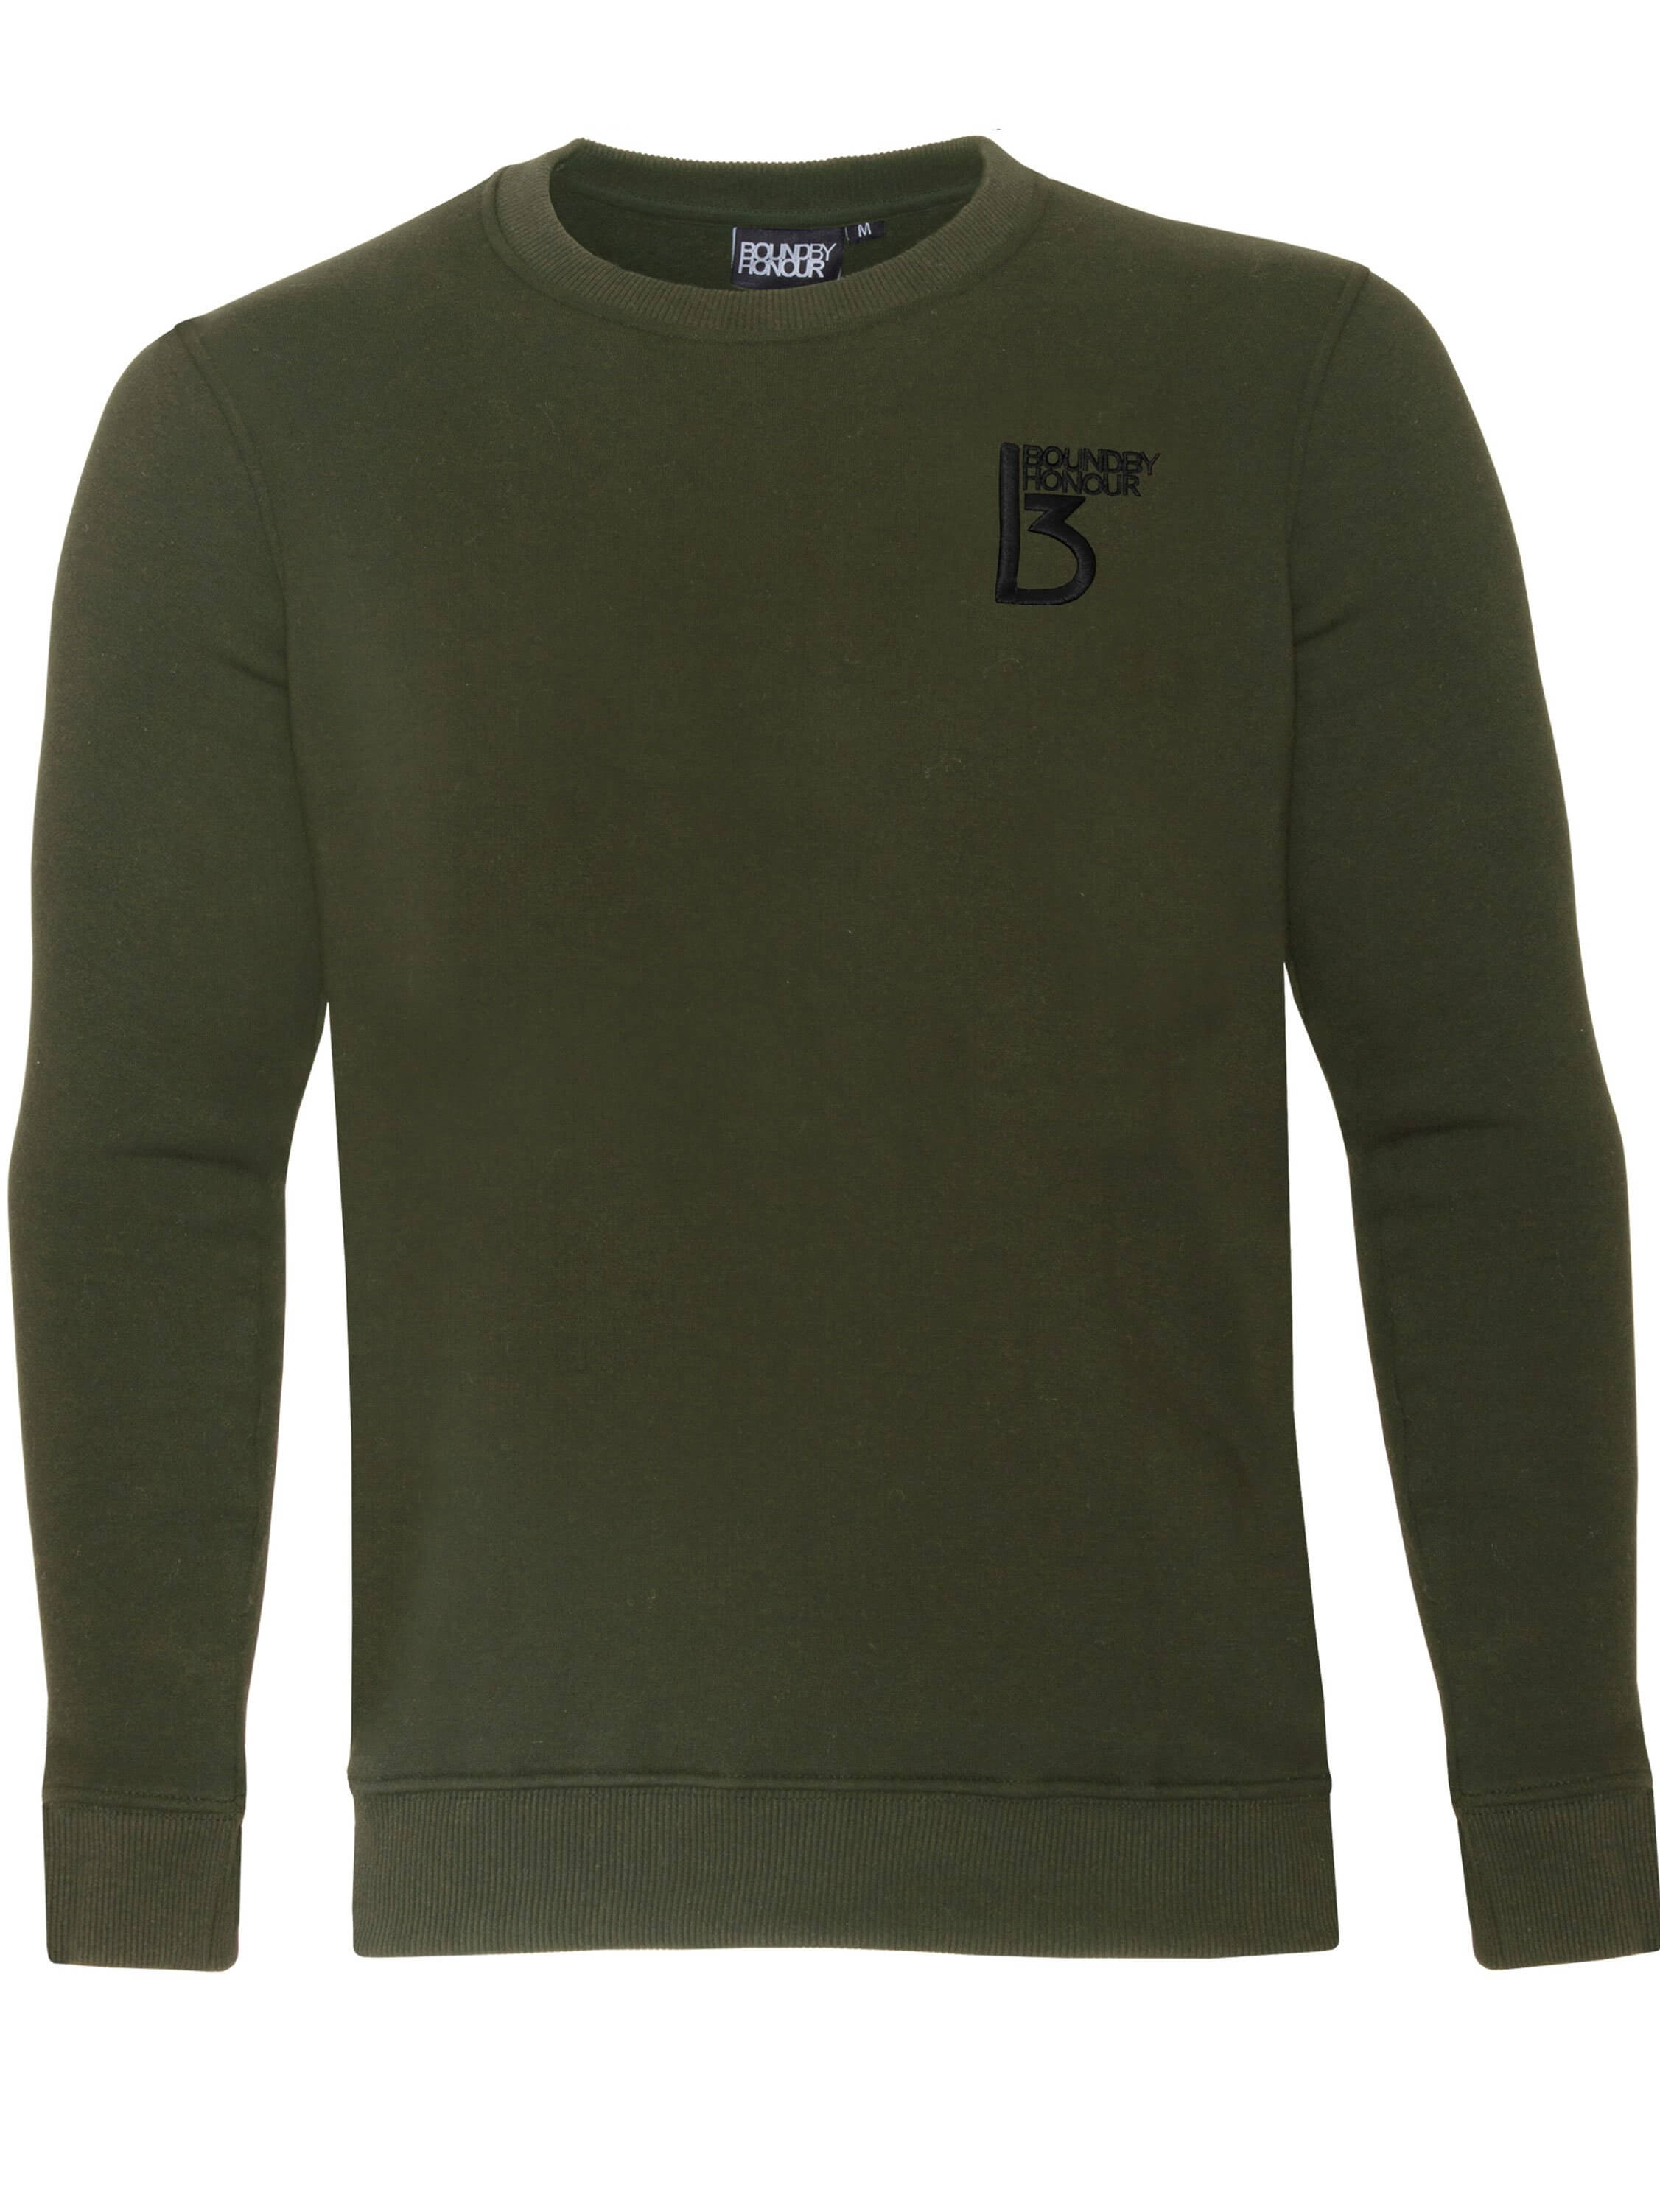 Image of Raw Denim Designer Outlet - BBH Mens Plain Sweatshirt Crew Neck Jersey Fleece Sweater Work Casual Jumper Top Bound By Honour by Bound By Honour for only £13.99 // Raw Denim